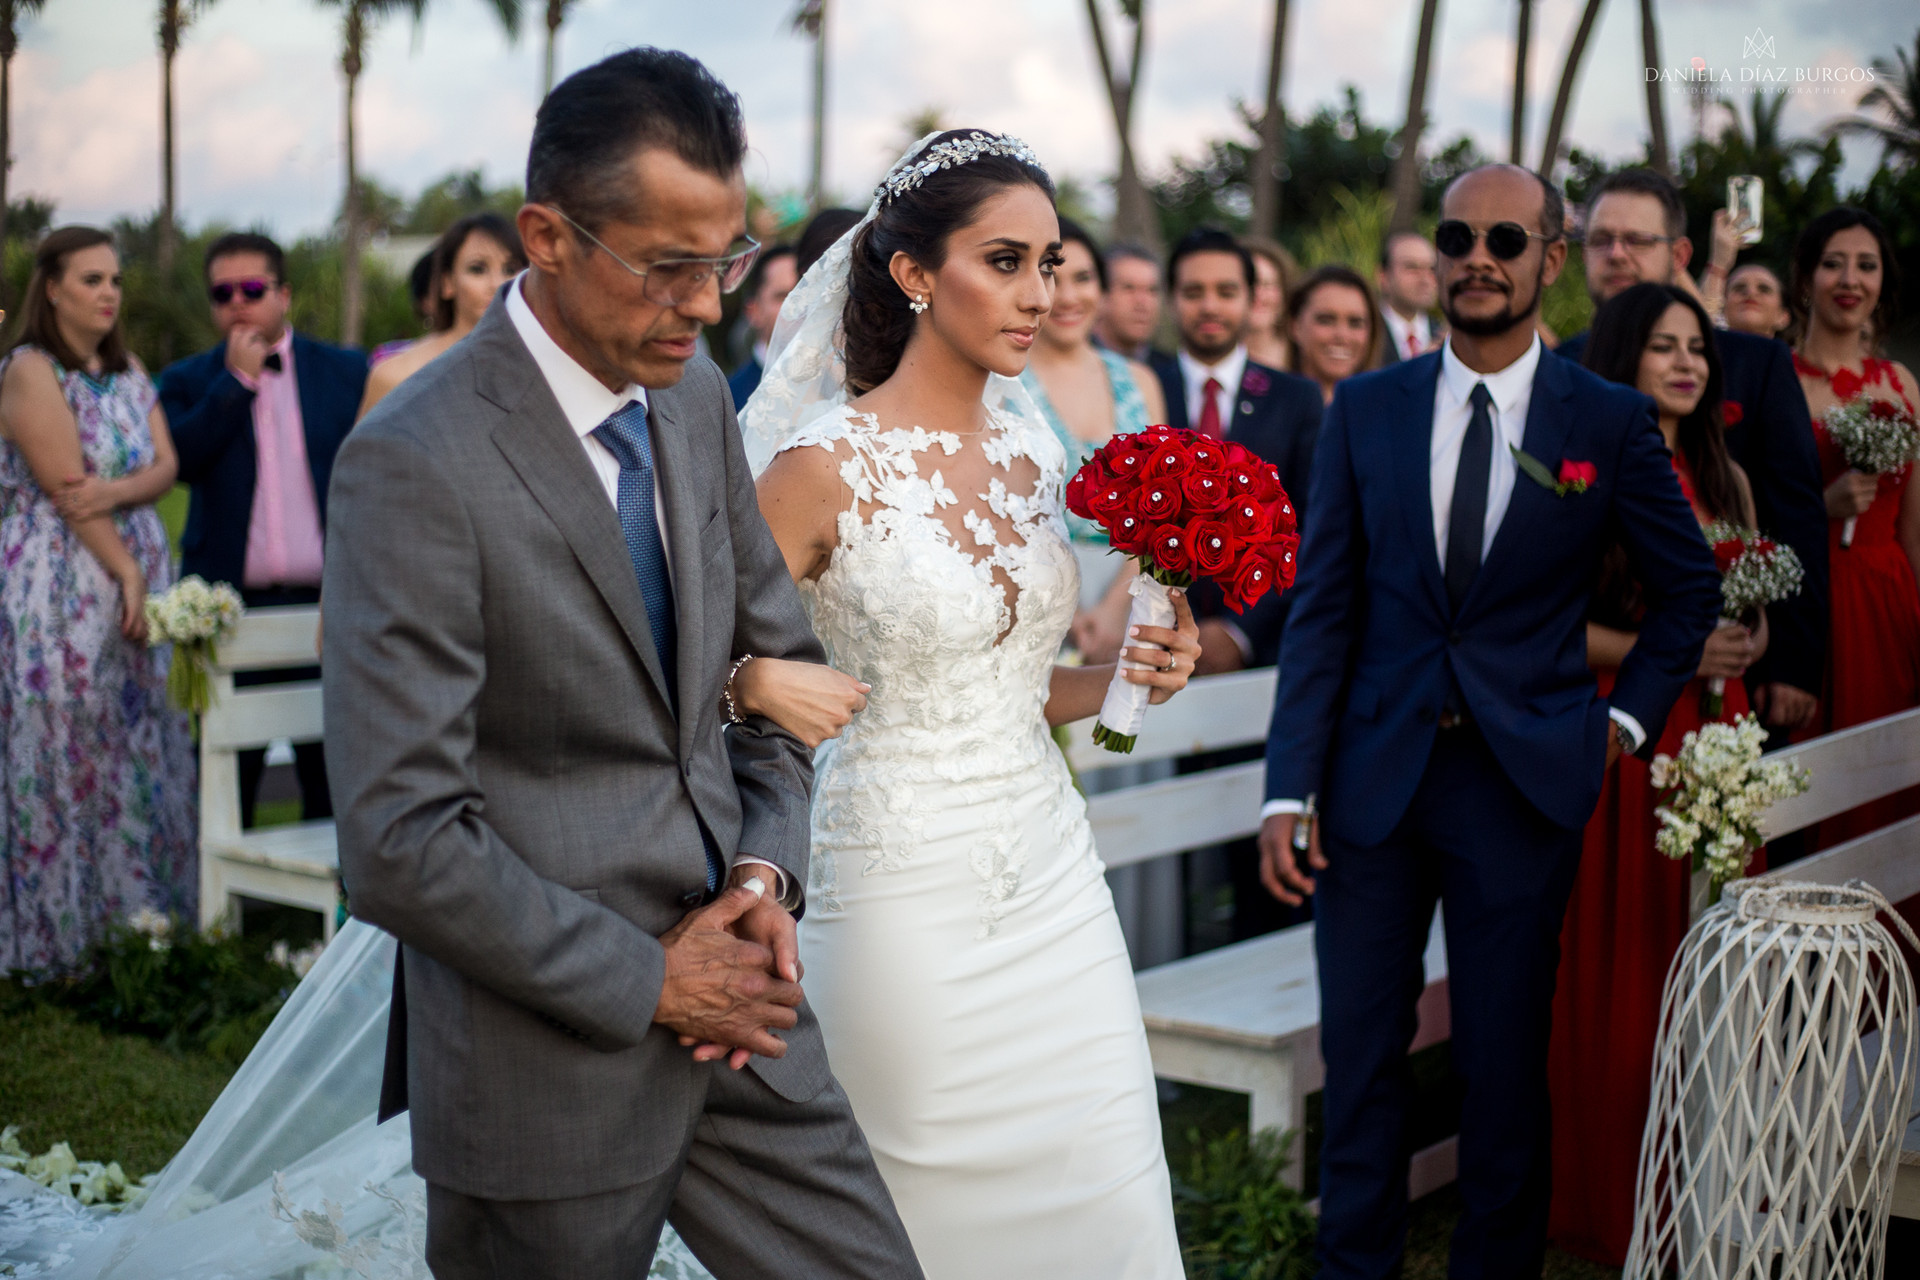 Zuza+Sergio-Wedding-LD-159.jpg